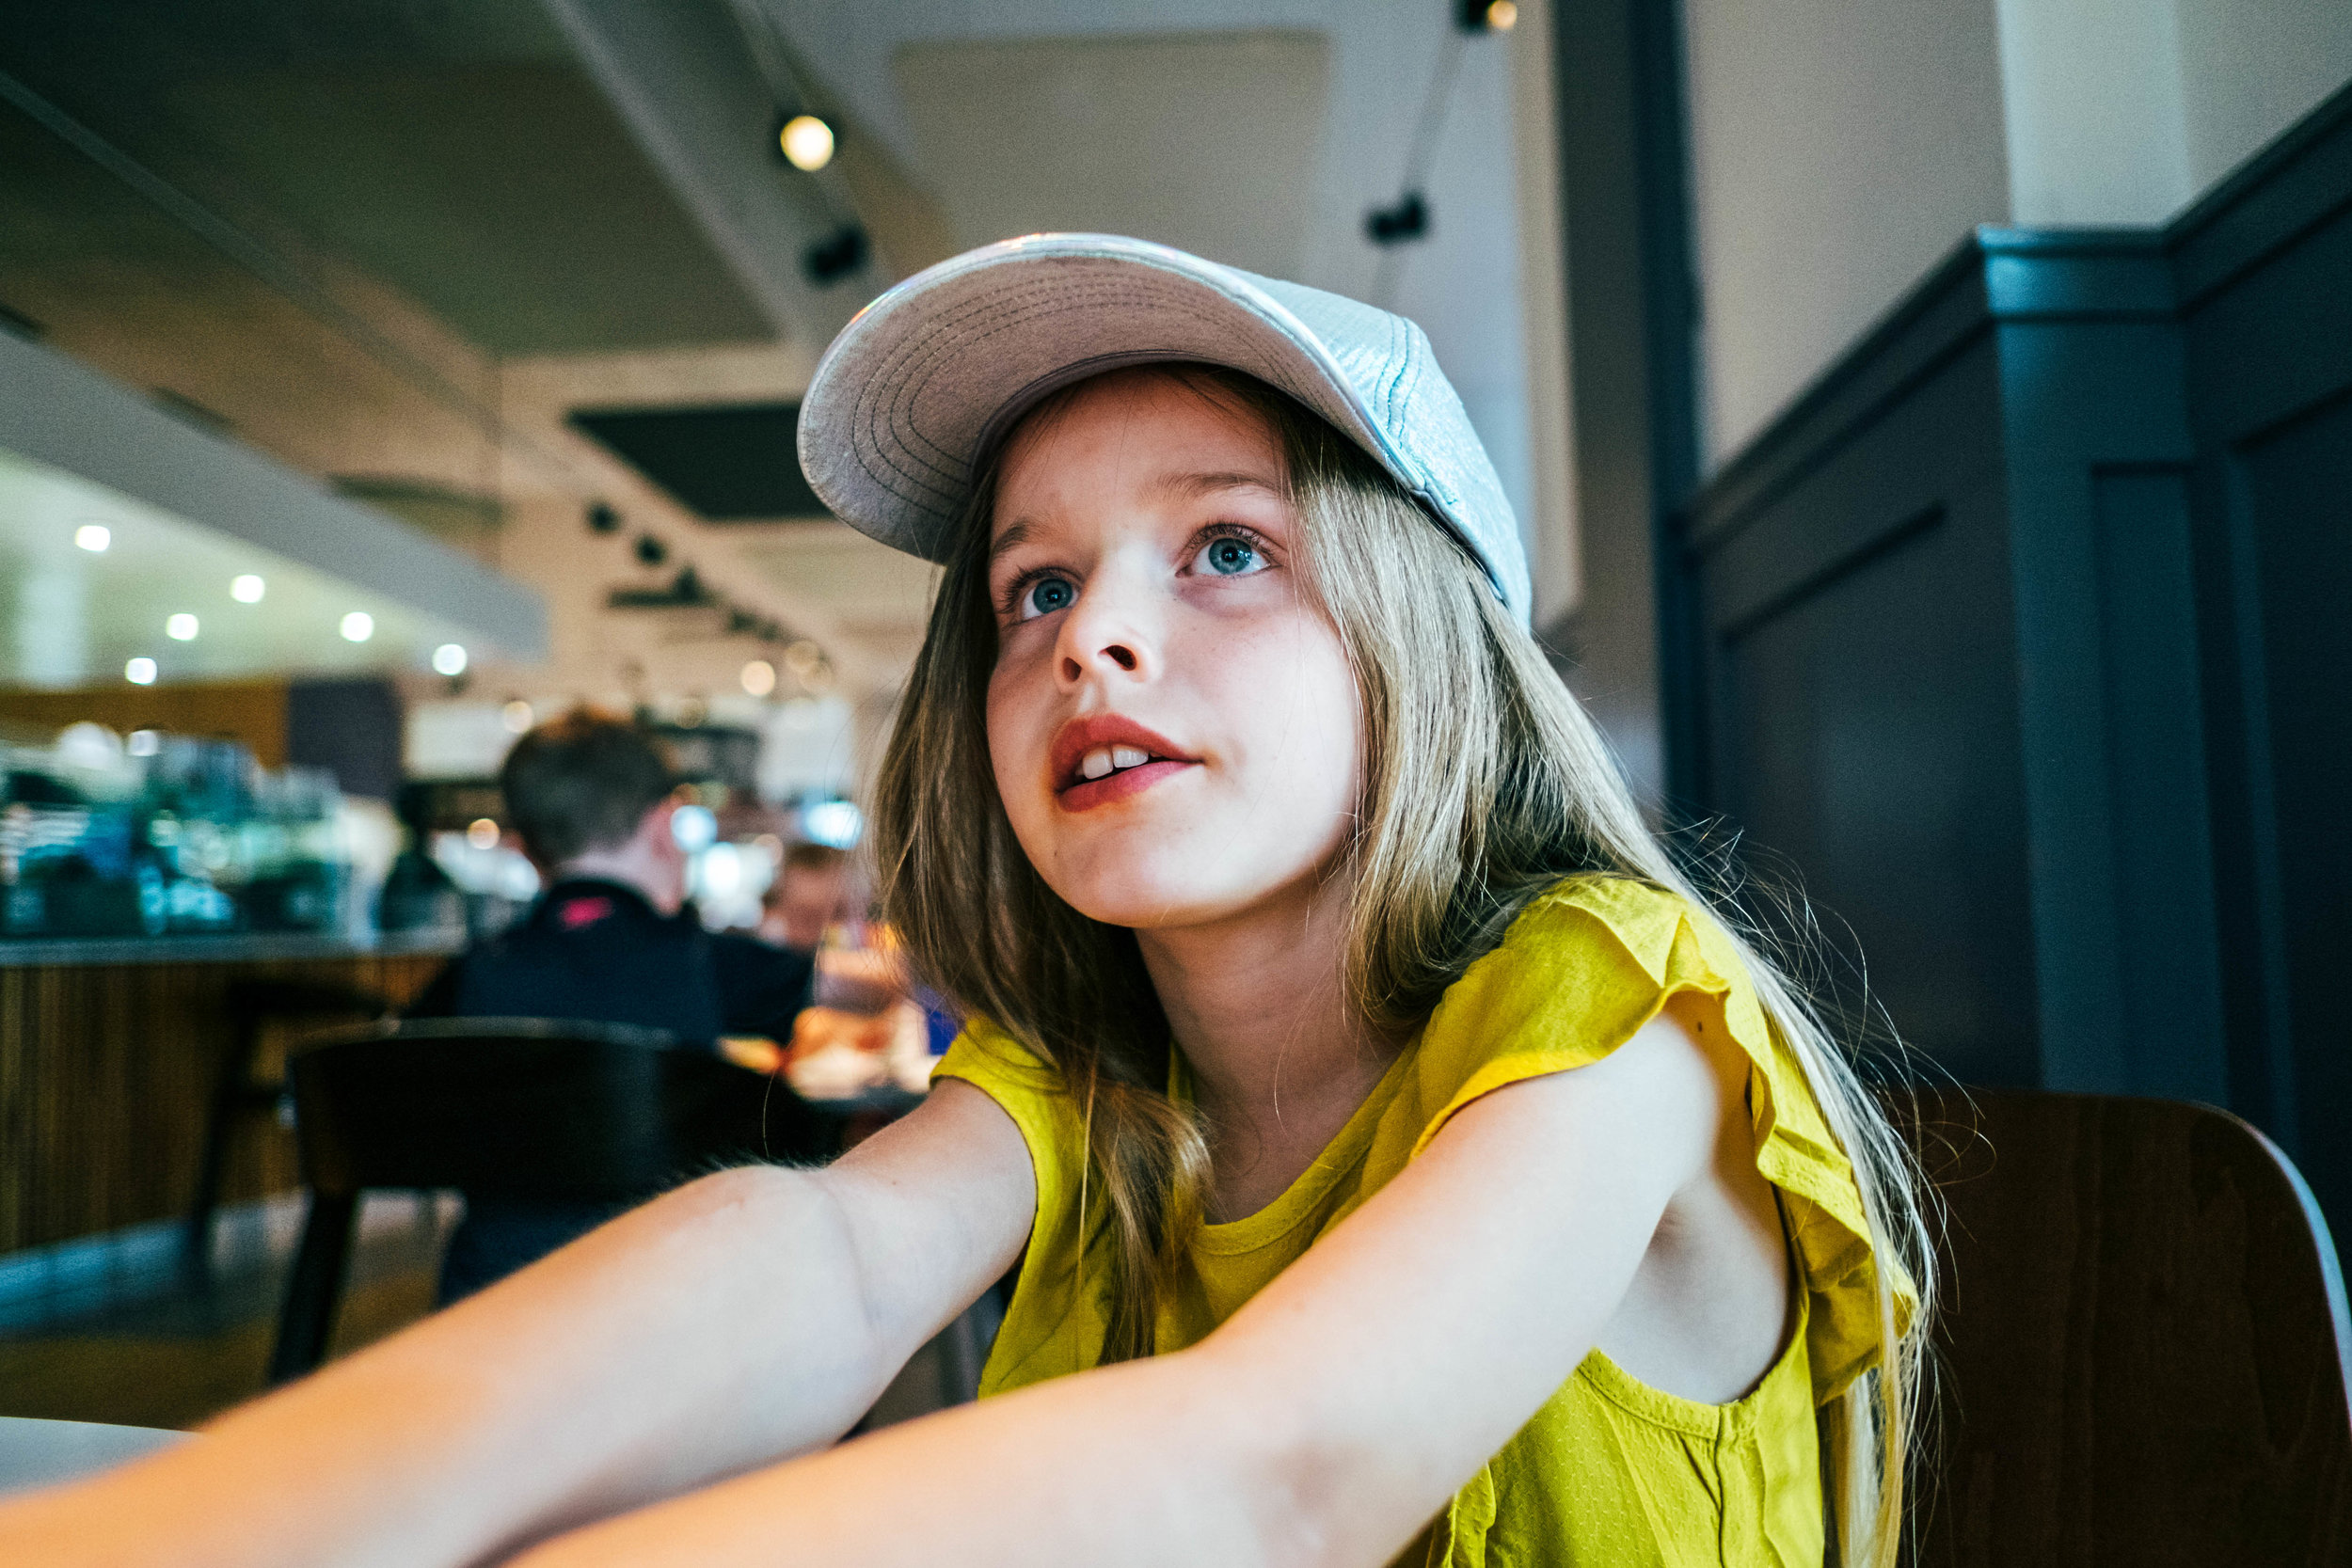 Little girl in cap Essex Family and Wedding Documentary Photographer